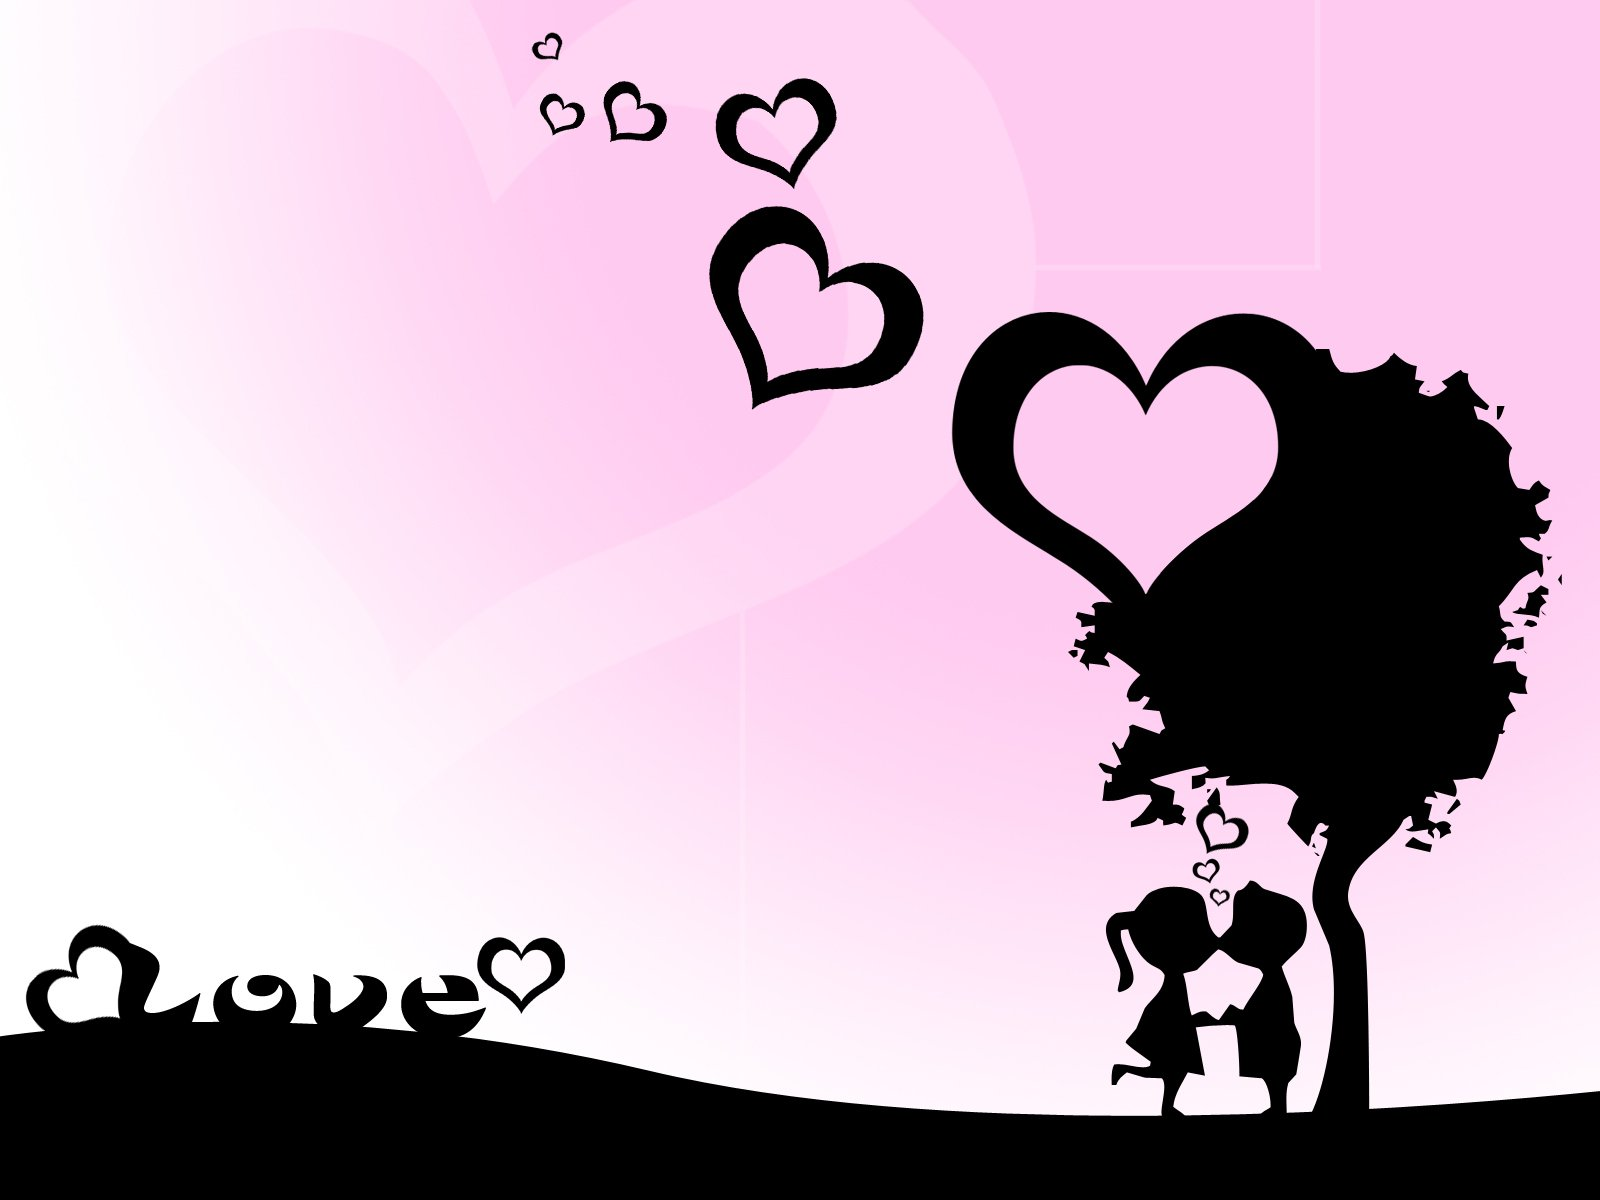 Cute Love Wallpapers Background HD for Pc Mobile Phone Download 1600x1200